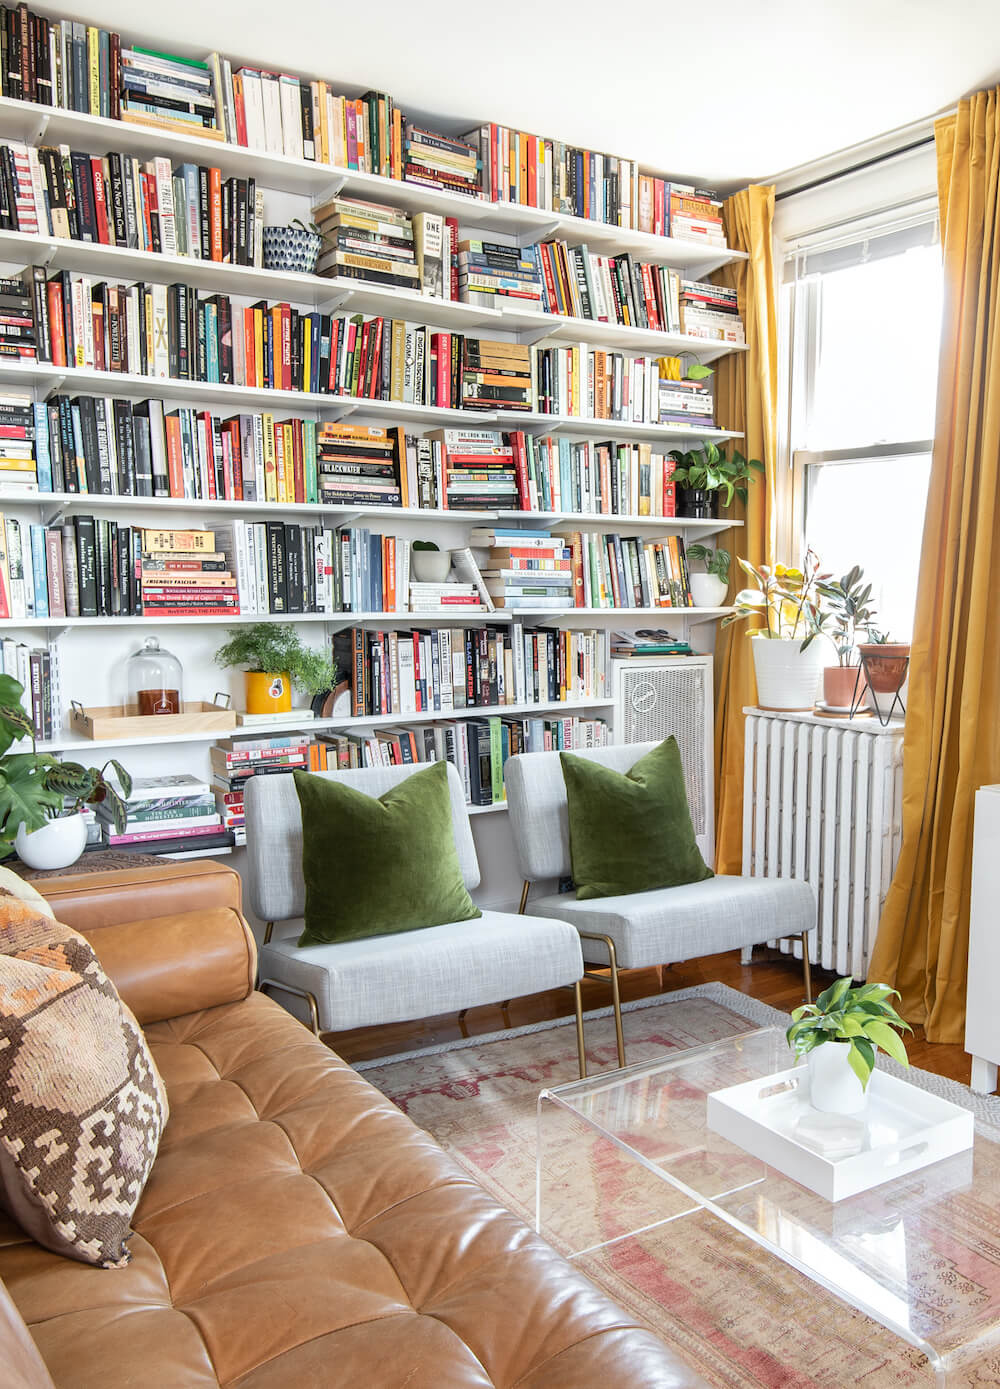 Small DC Apartment Tour With A Focus On Books